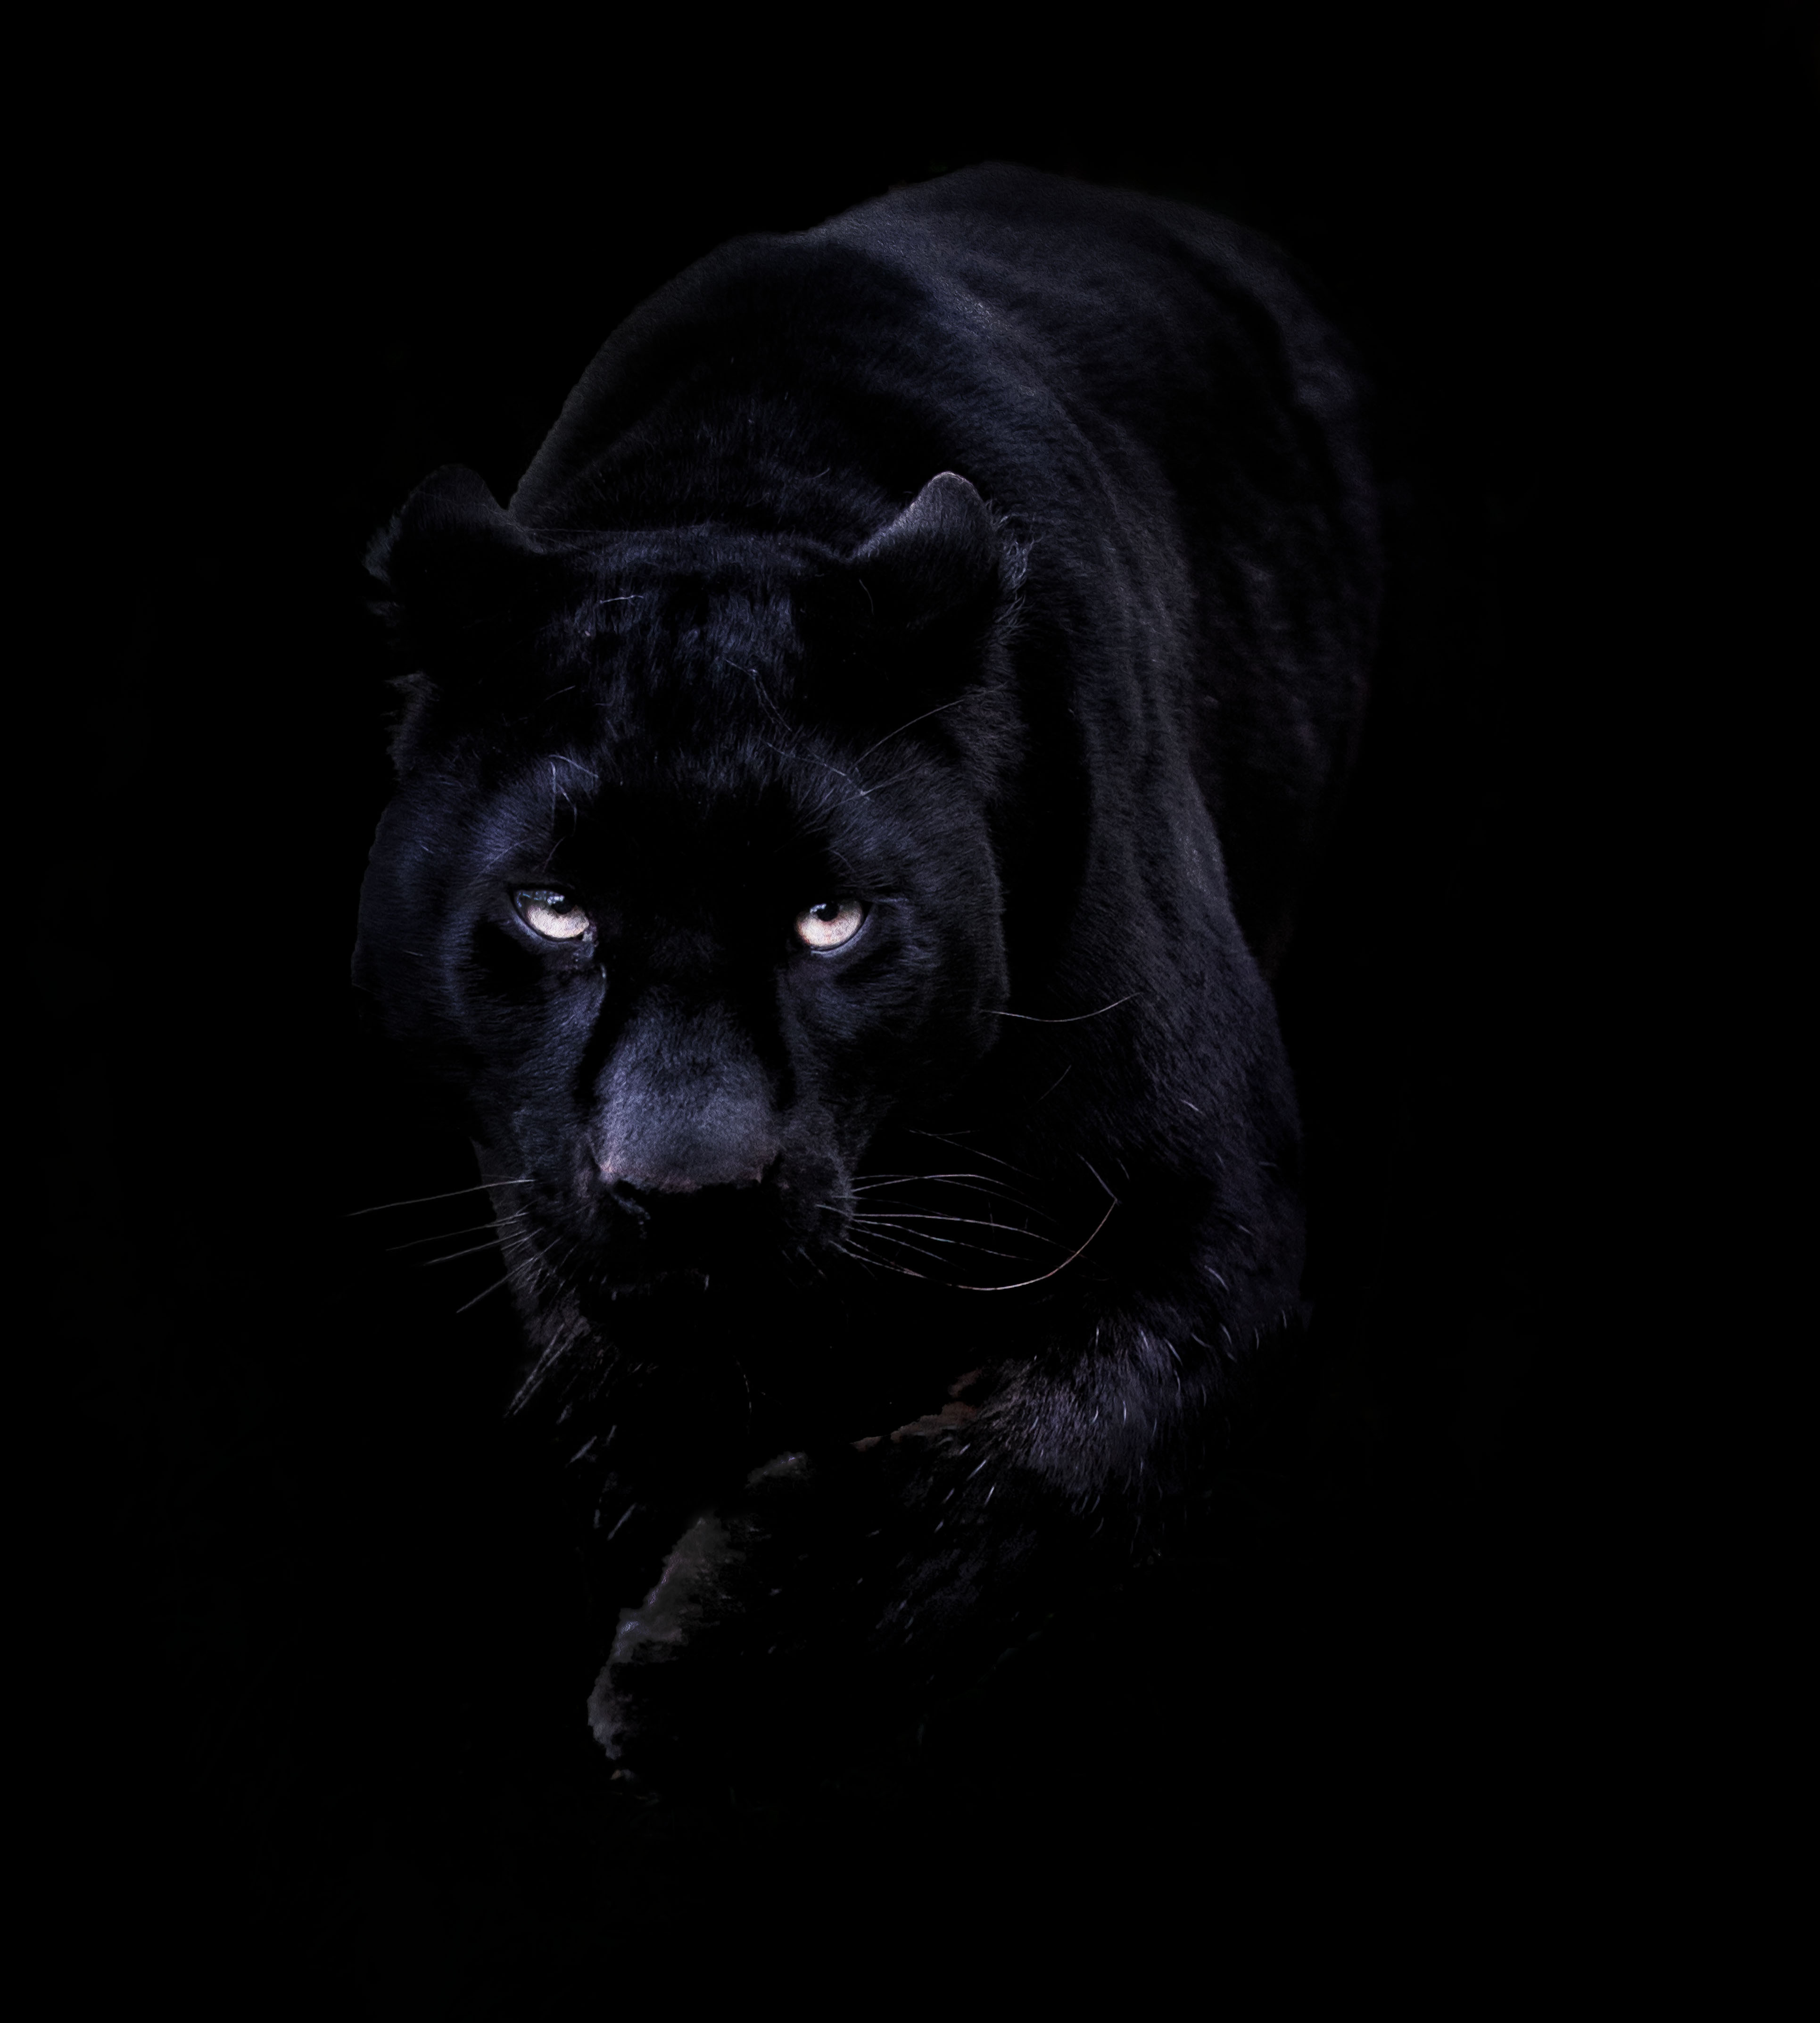 Black Panther Wallpapers High Quality Download Free